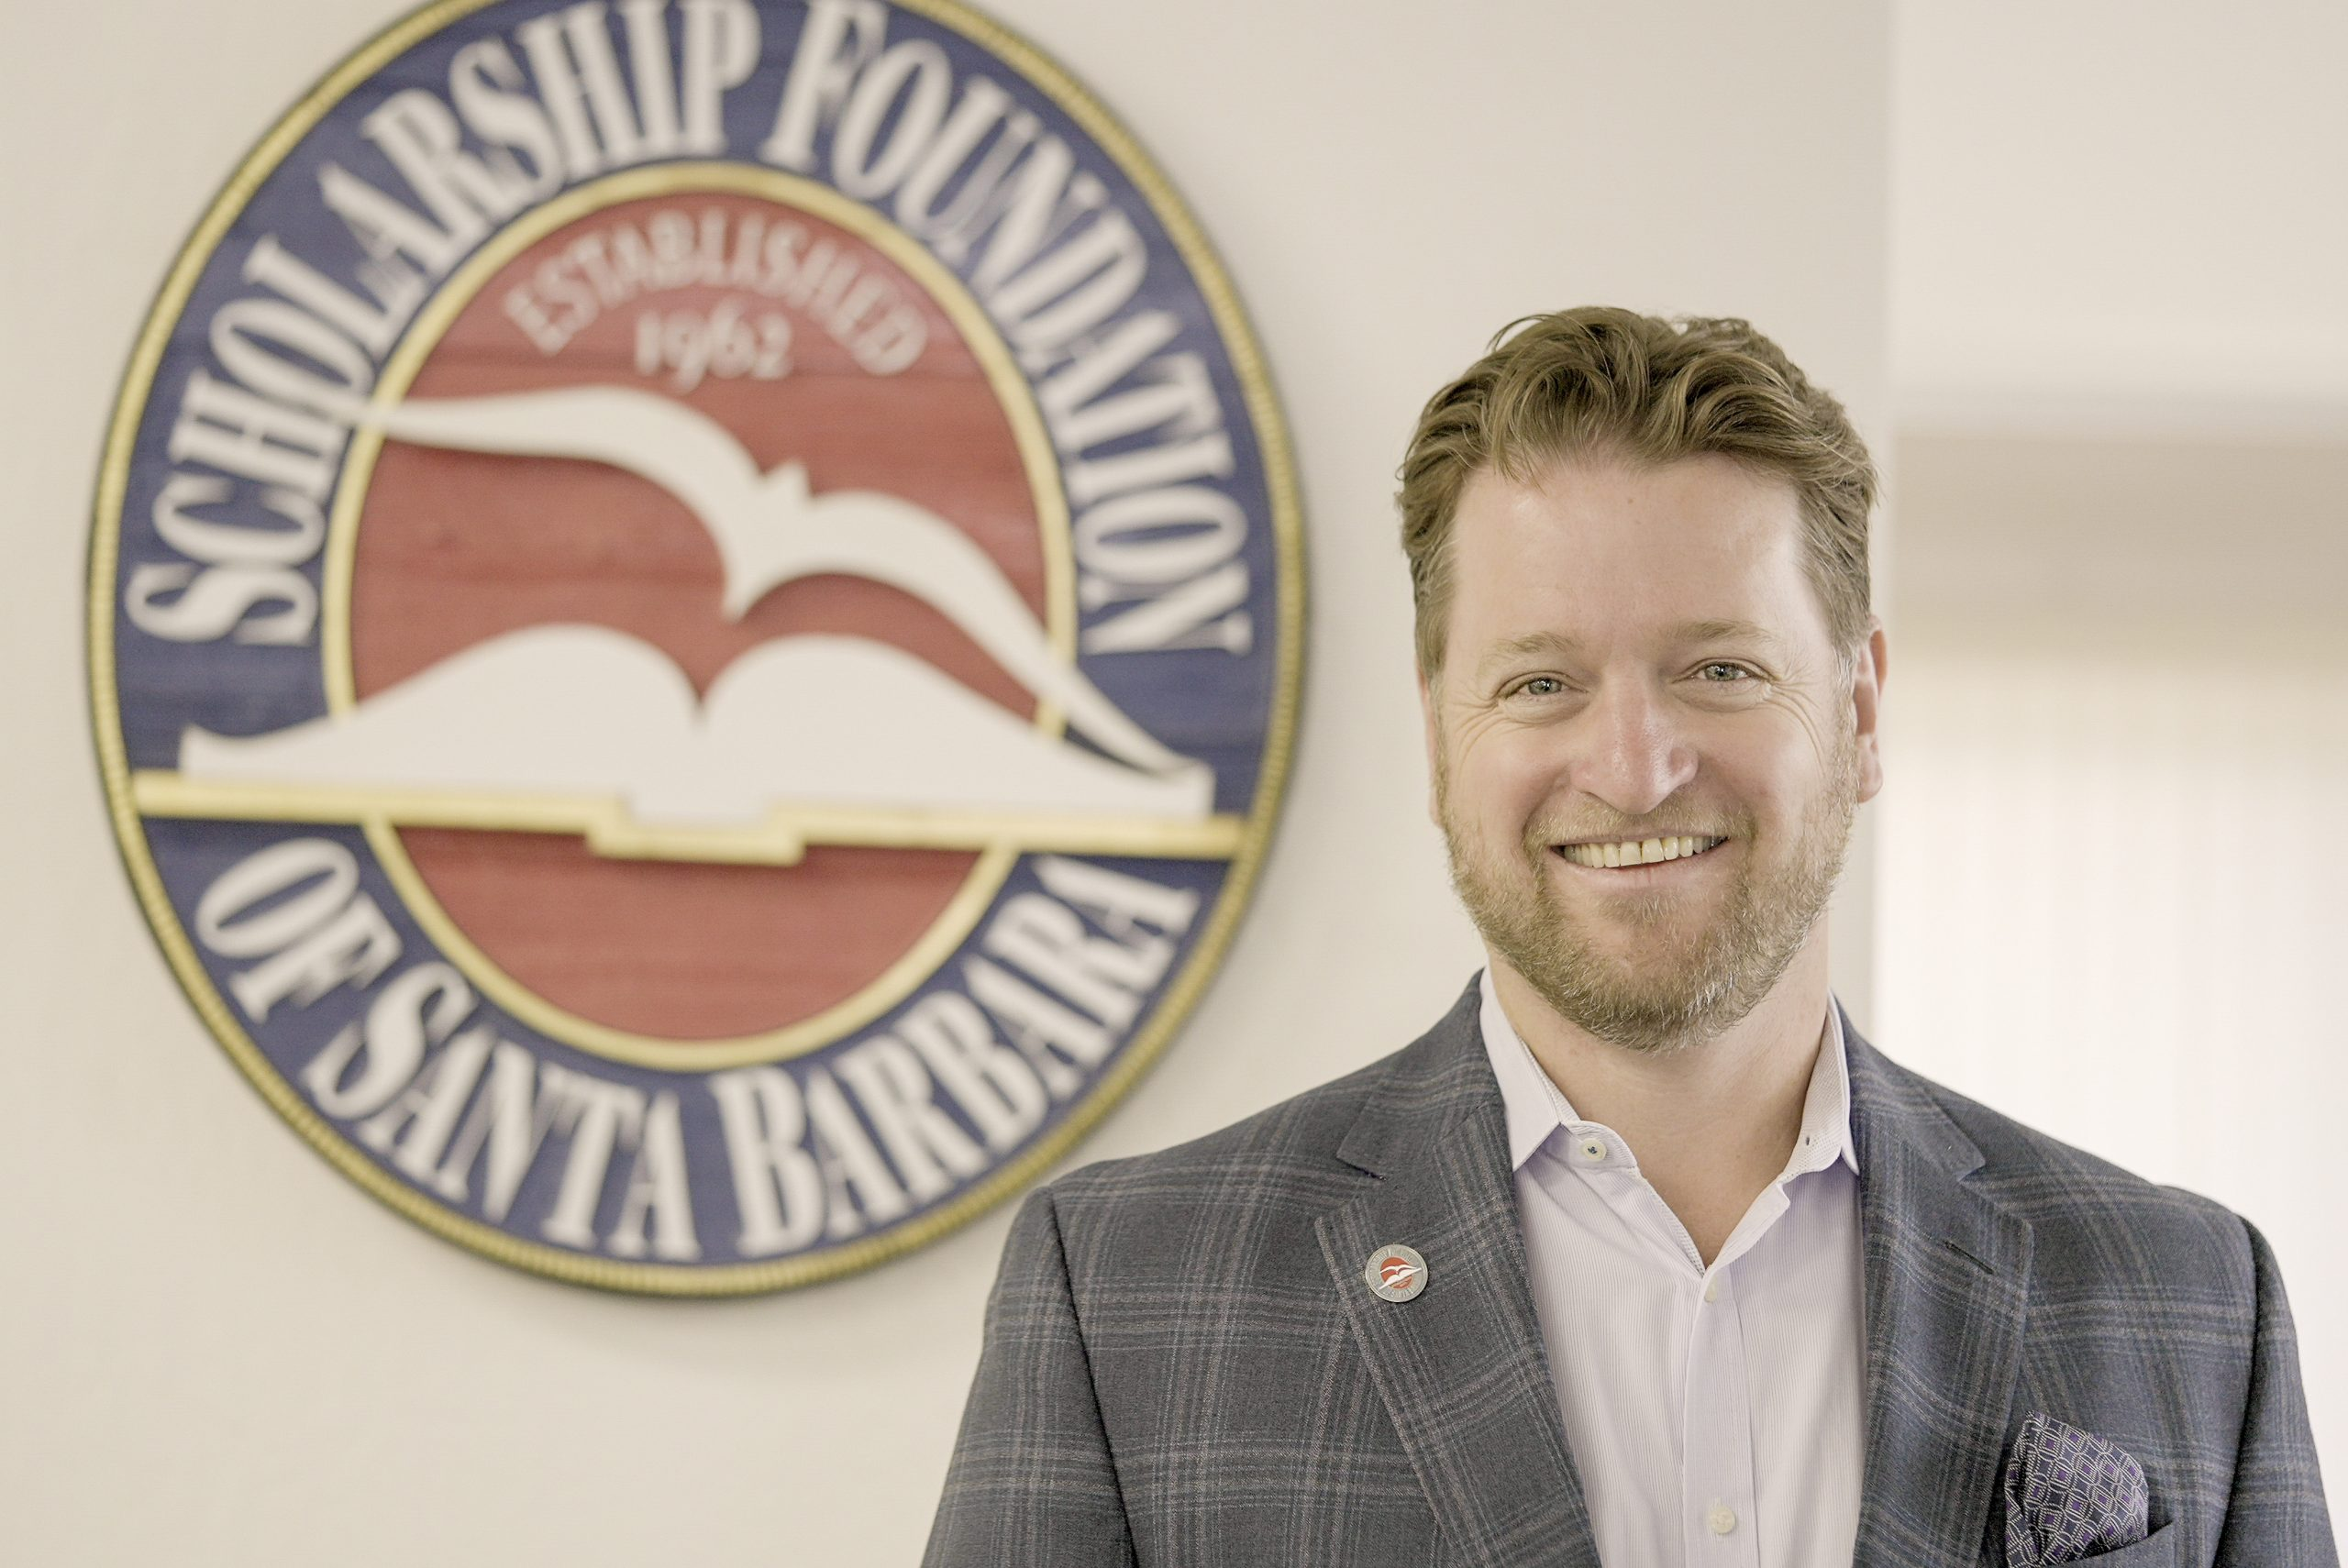 Rowe Elected Scholarship Foundation Board Chair